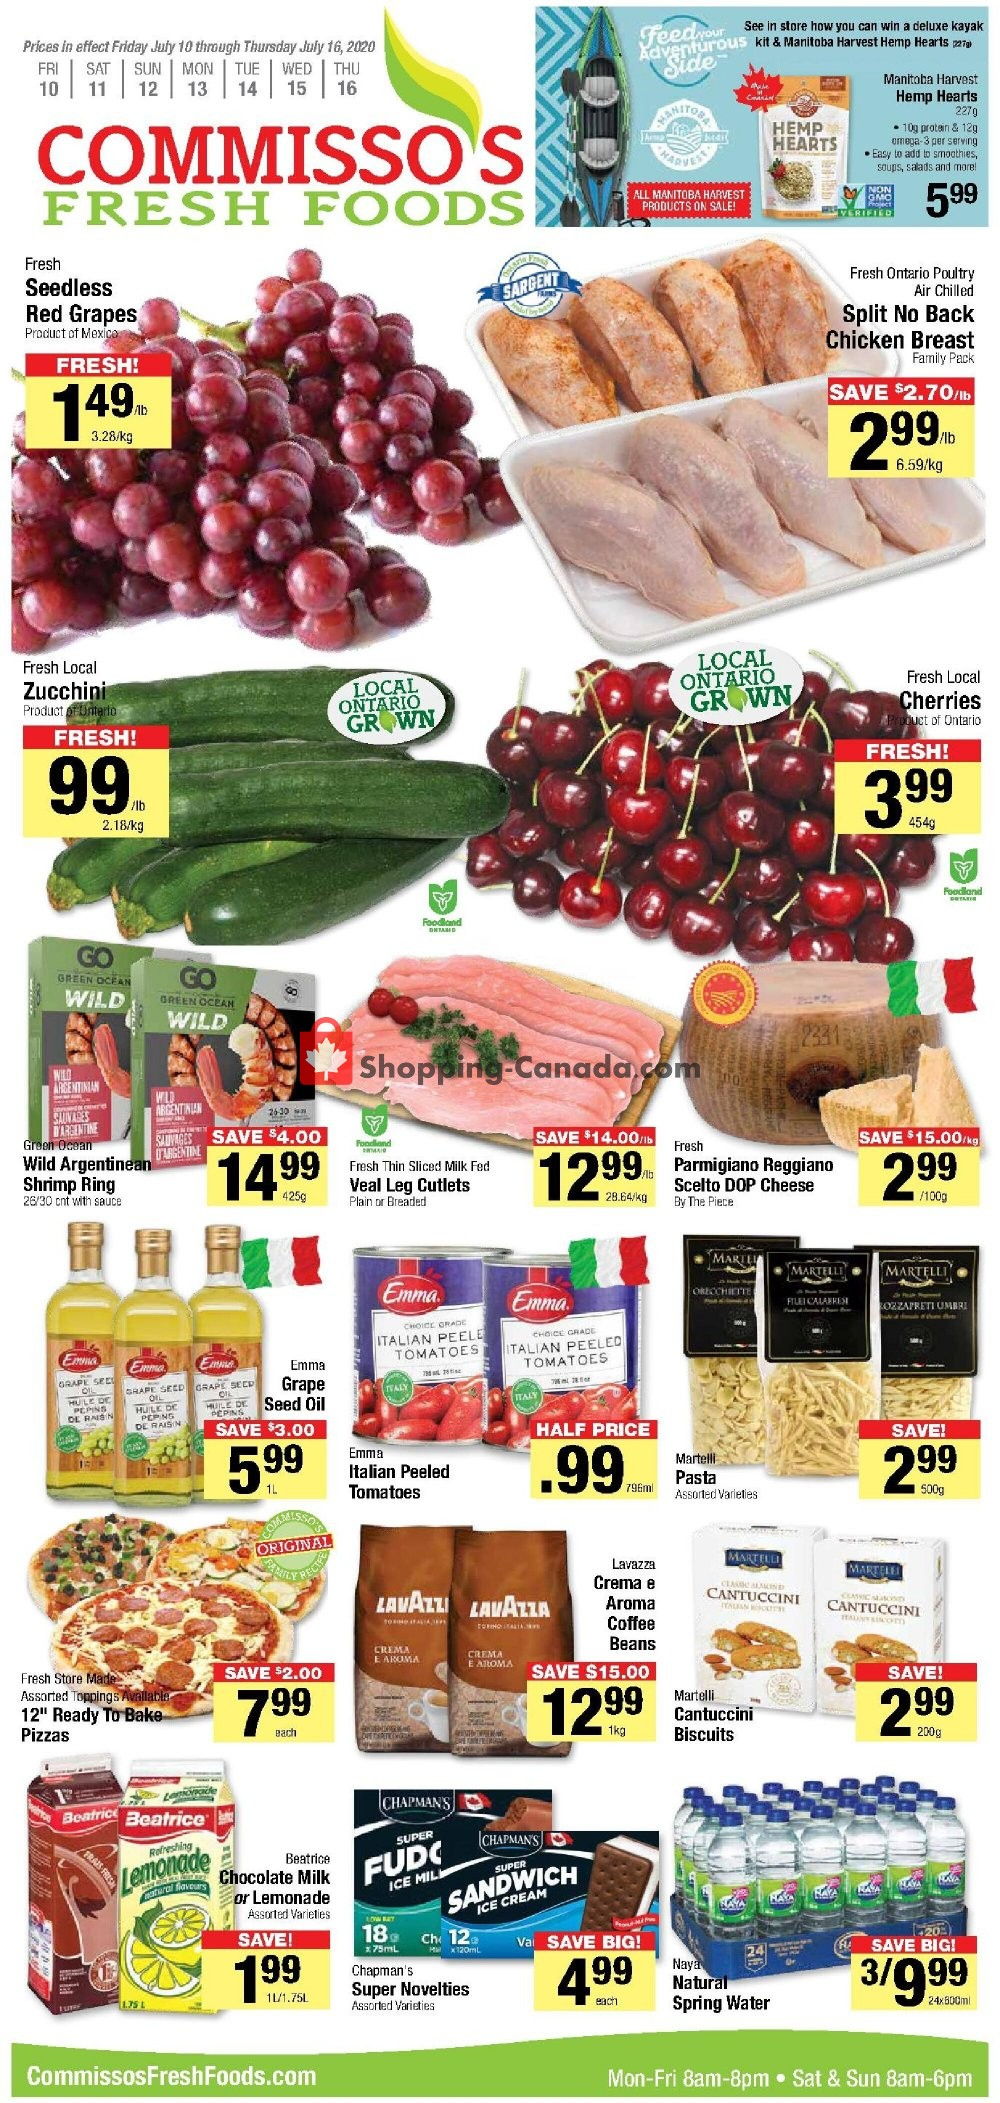 Flyer Commisso's Fresh Foods Canada - from Friday July 10, 2020 to Thursday July 16, 2020